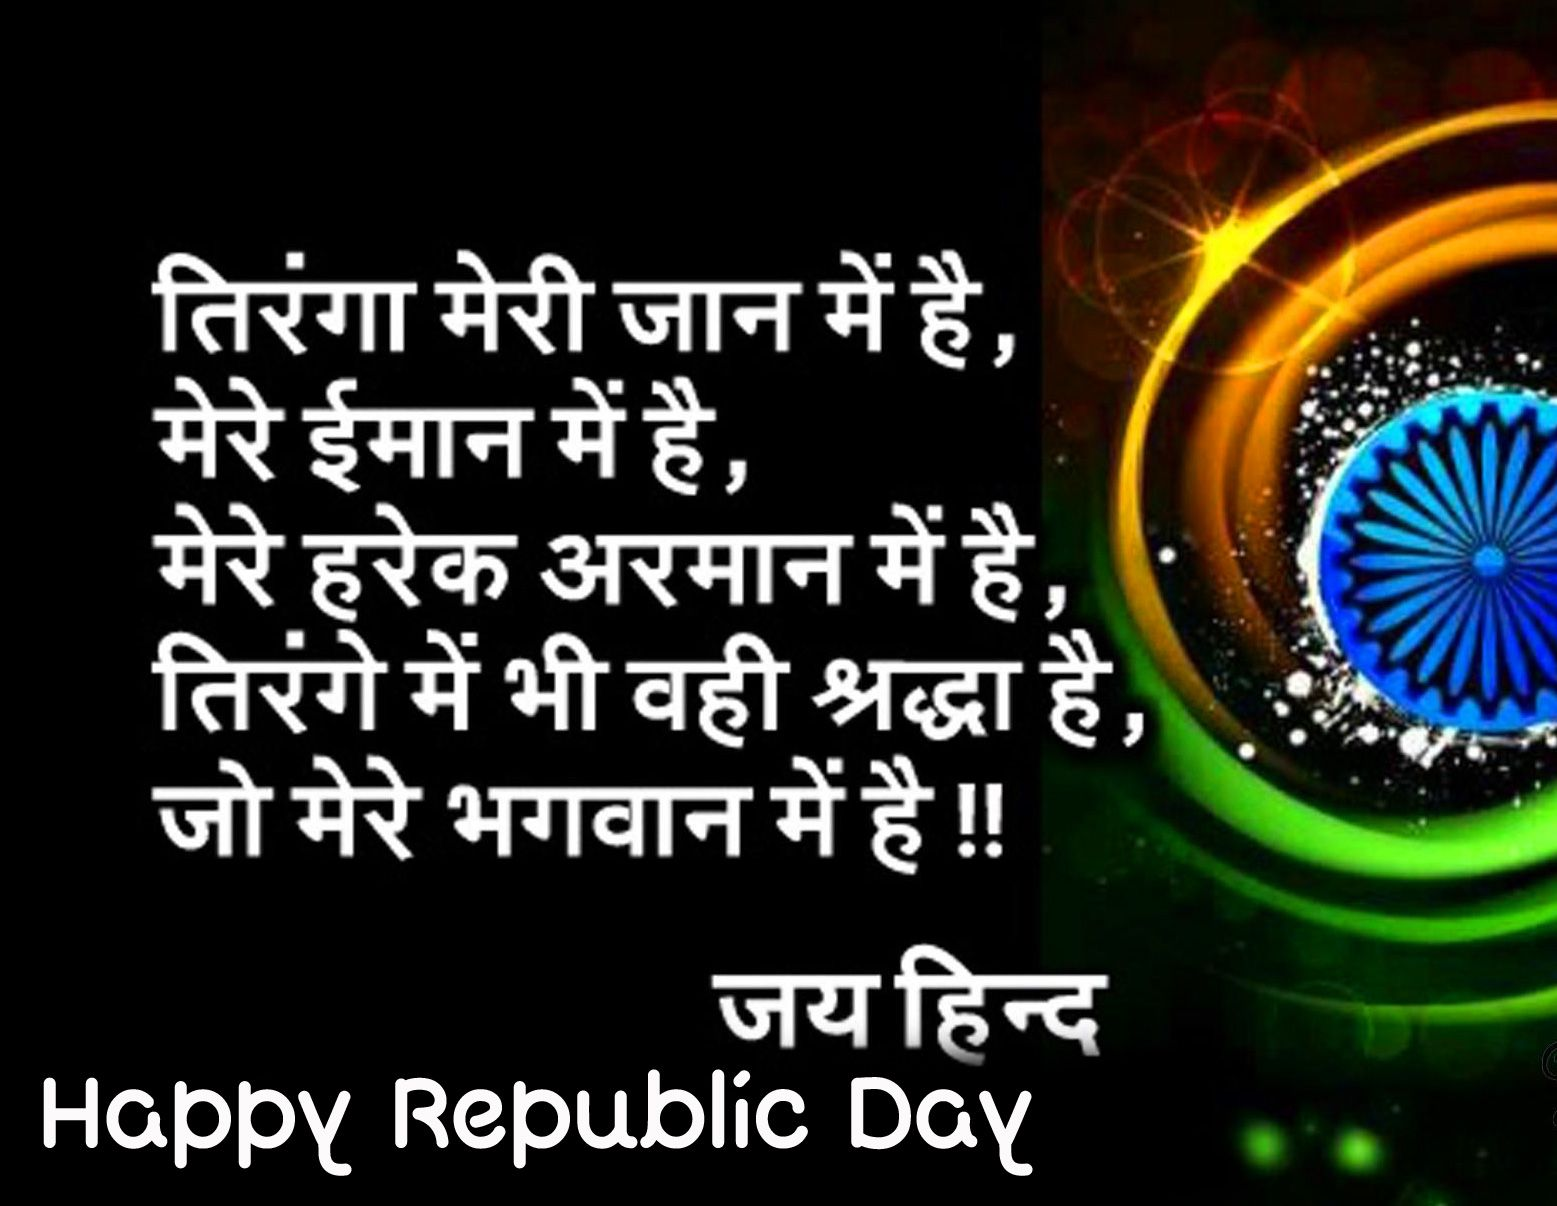 Jai Hind Hindi Quote With Happy Republic Day Wish Republic Day Hindi Quotes Day Wishes Happy republic day in hindi status